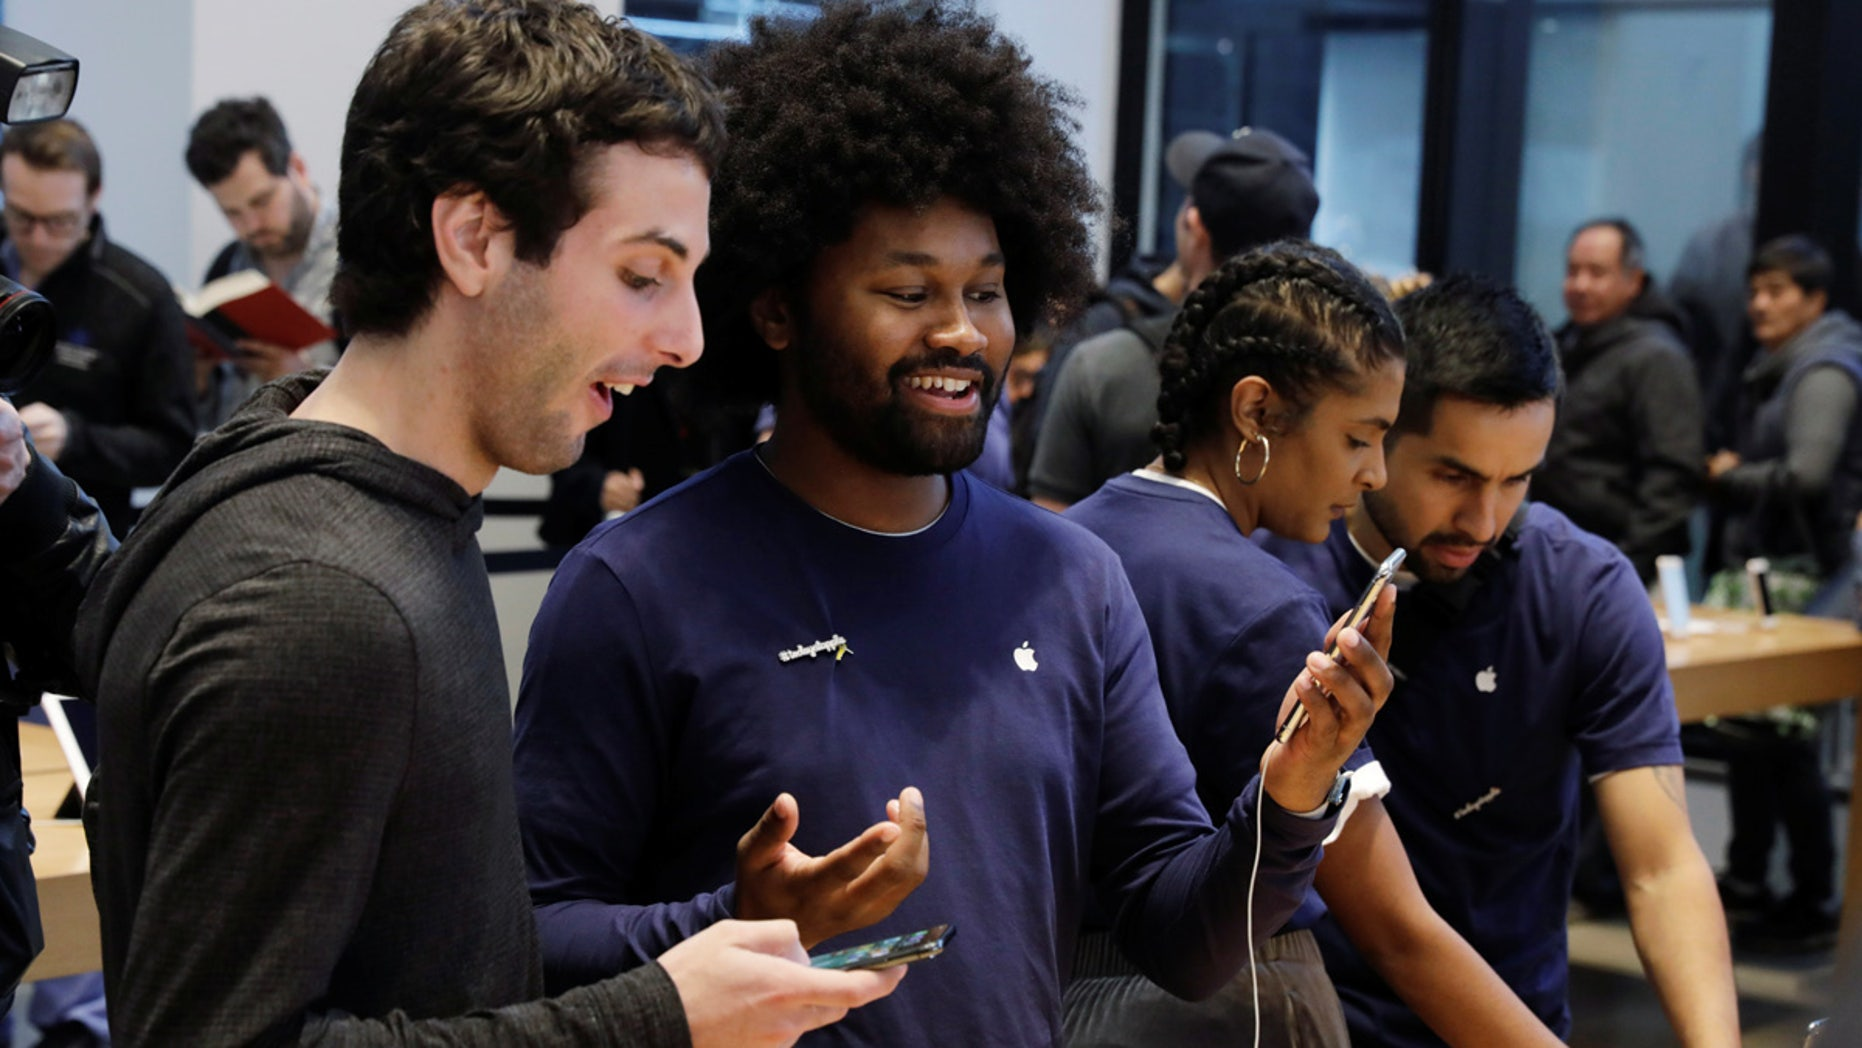 An Apple sales associate speaks with a customer waiting to purchase a new iPhone X in New York, November 3, 2017.